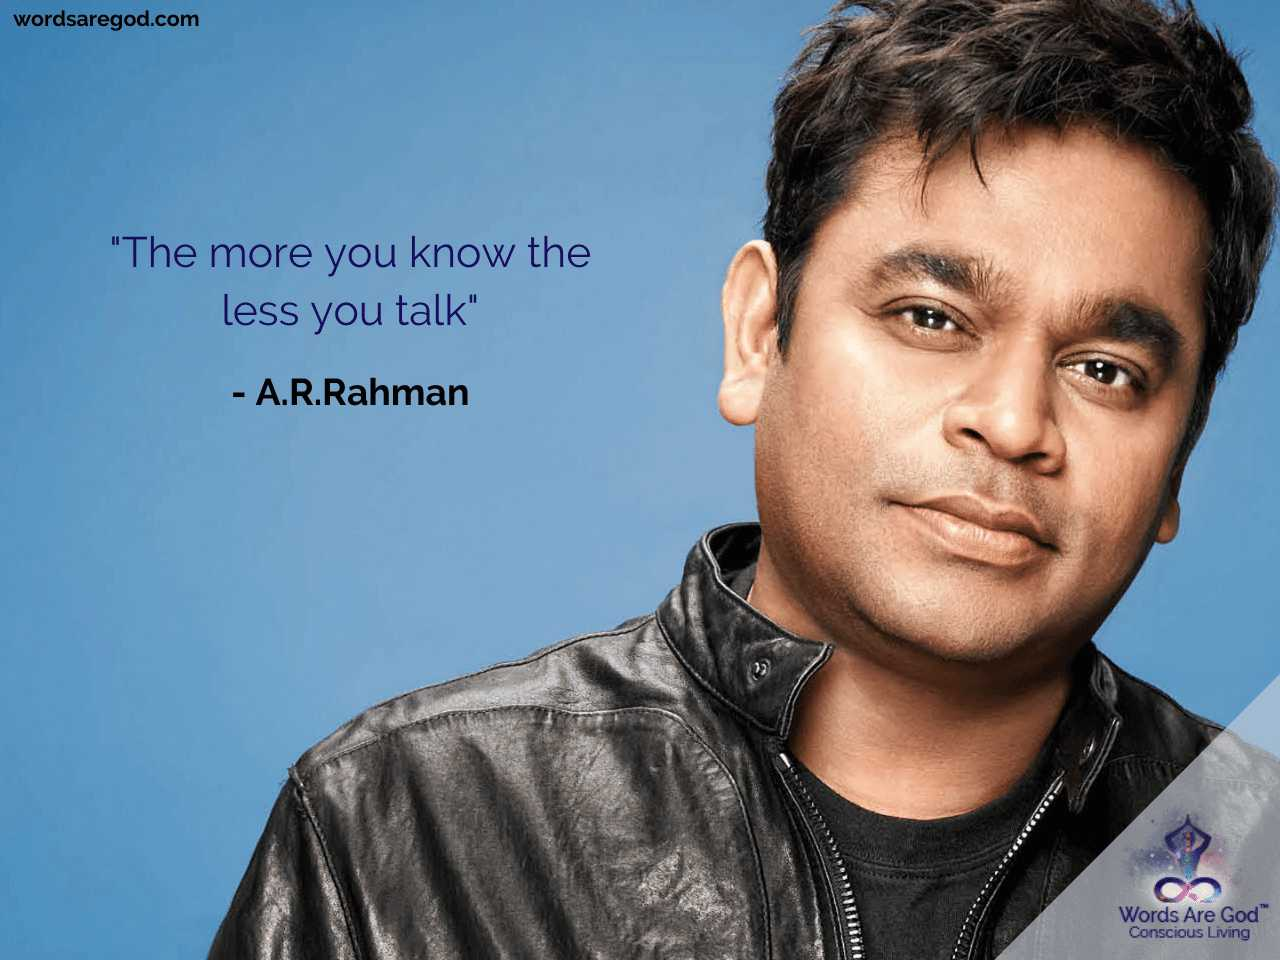 A.R.Rahman Life Quote